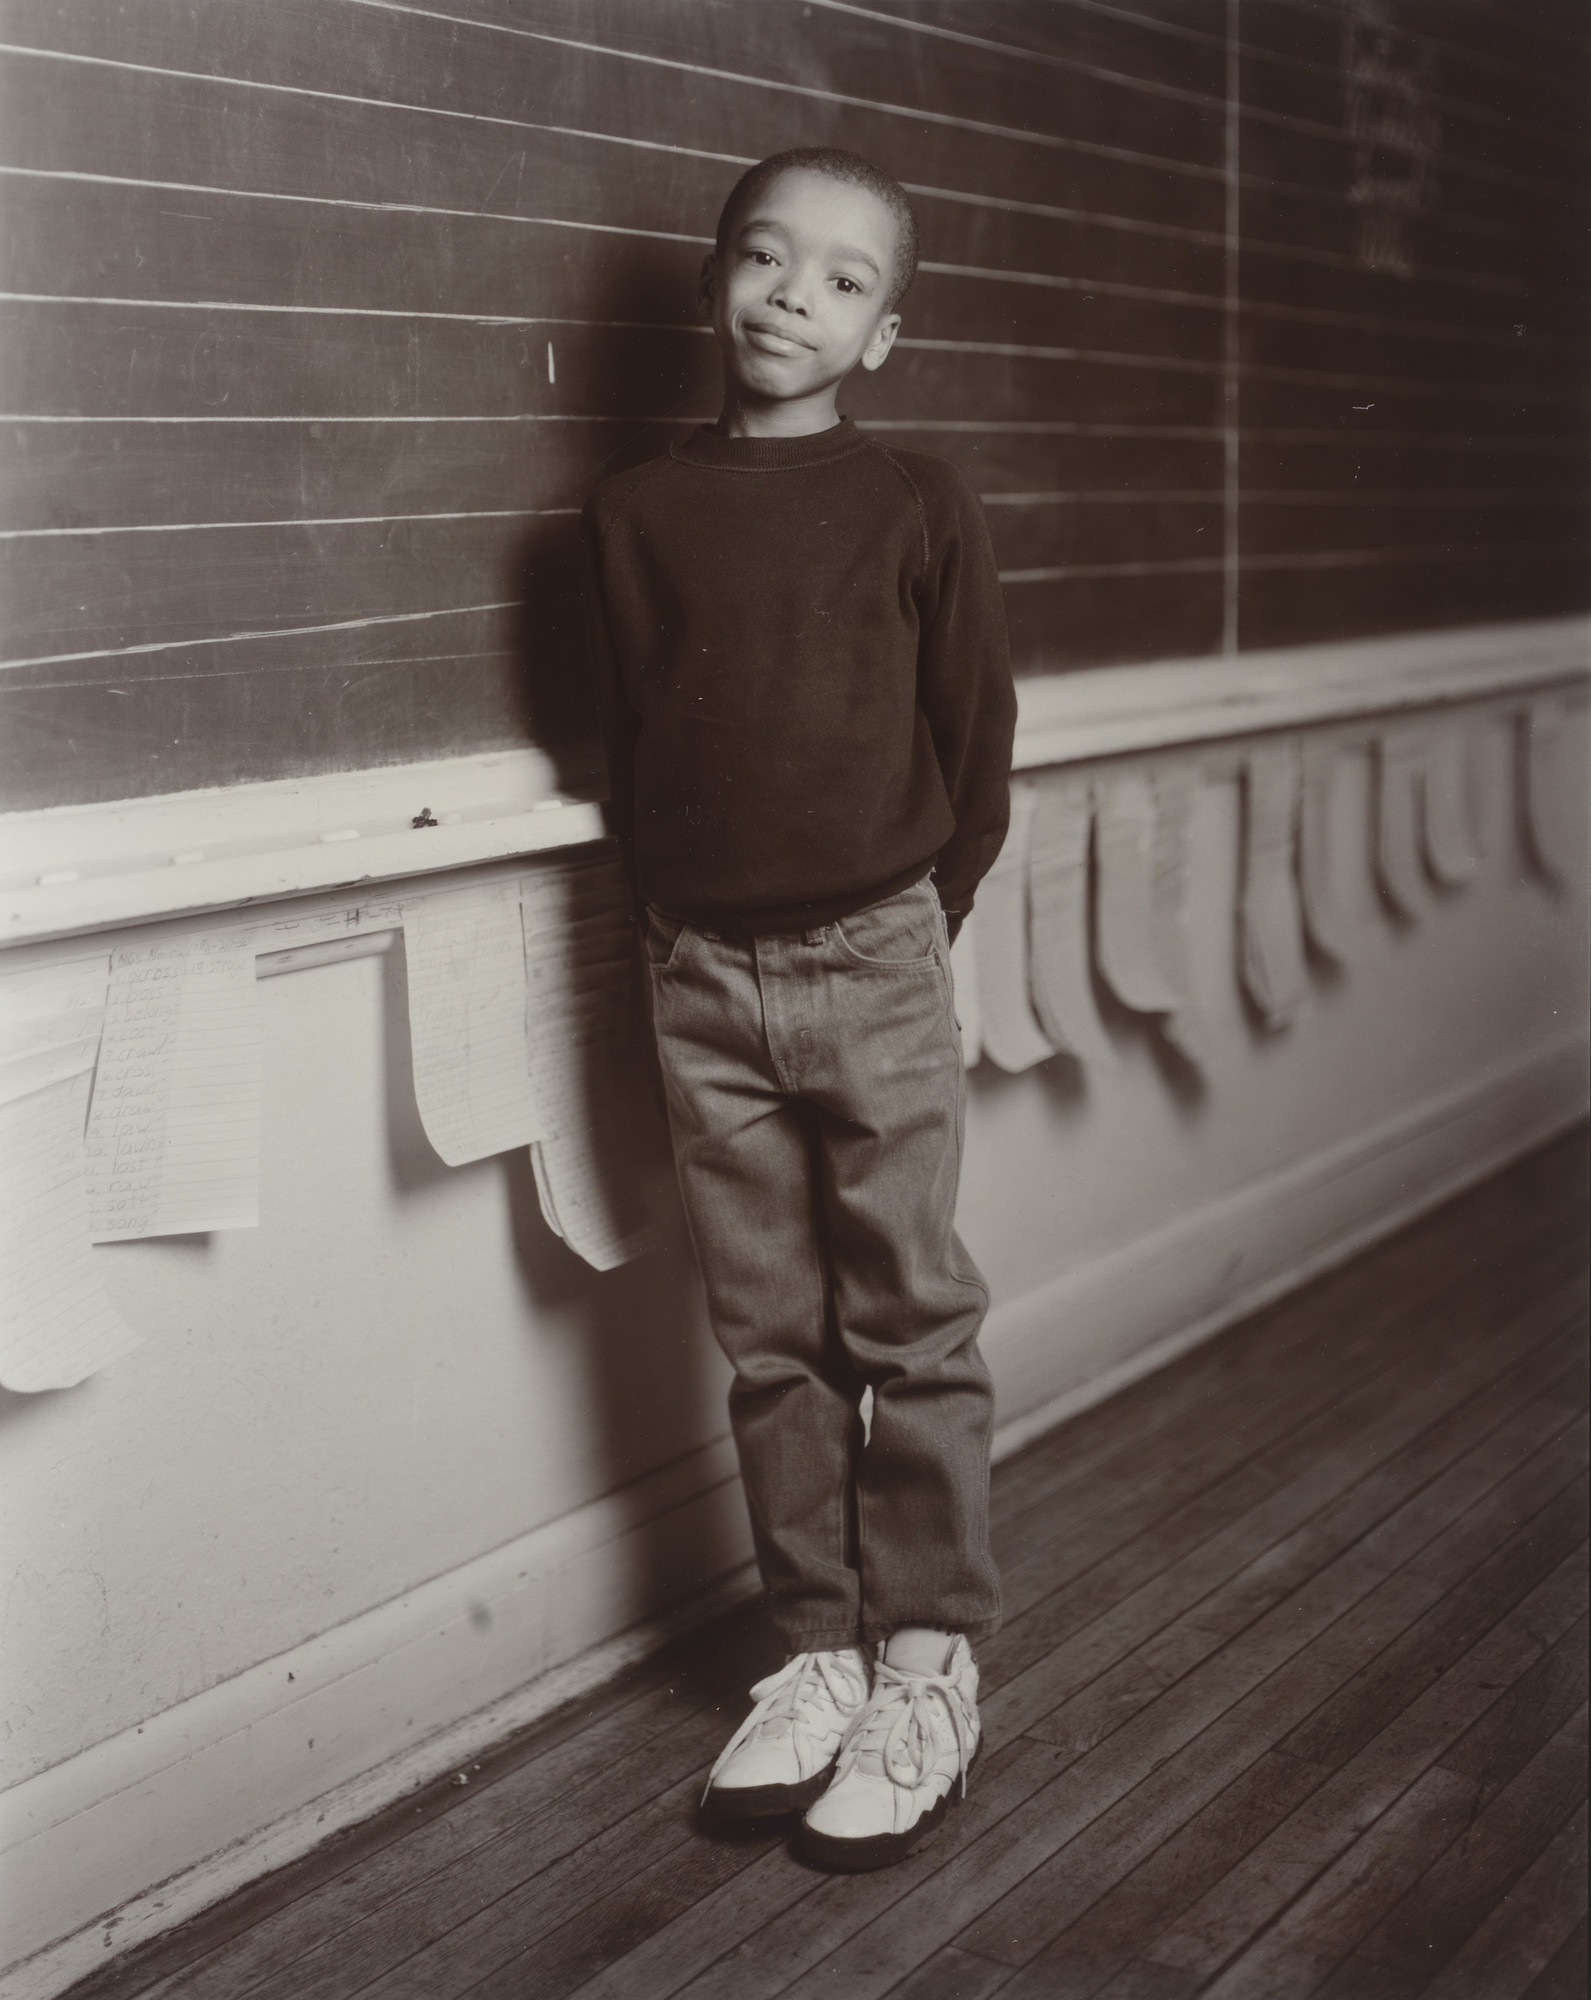 Judith Joy Ross. Brandon Brown, Almira Elementary School, Cleveland, Ohio. 1993